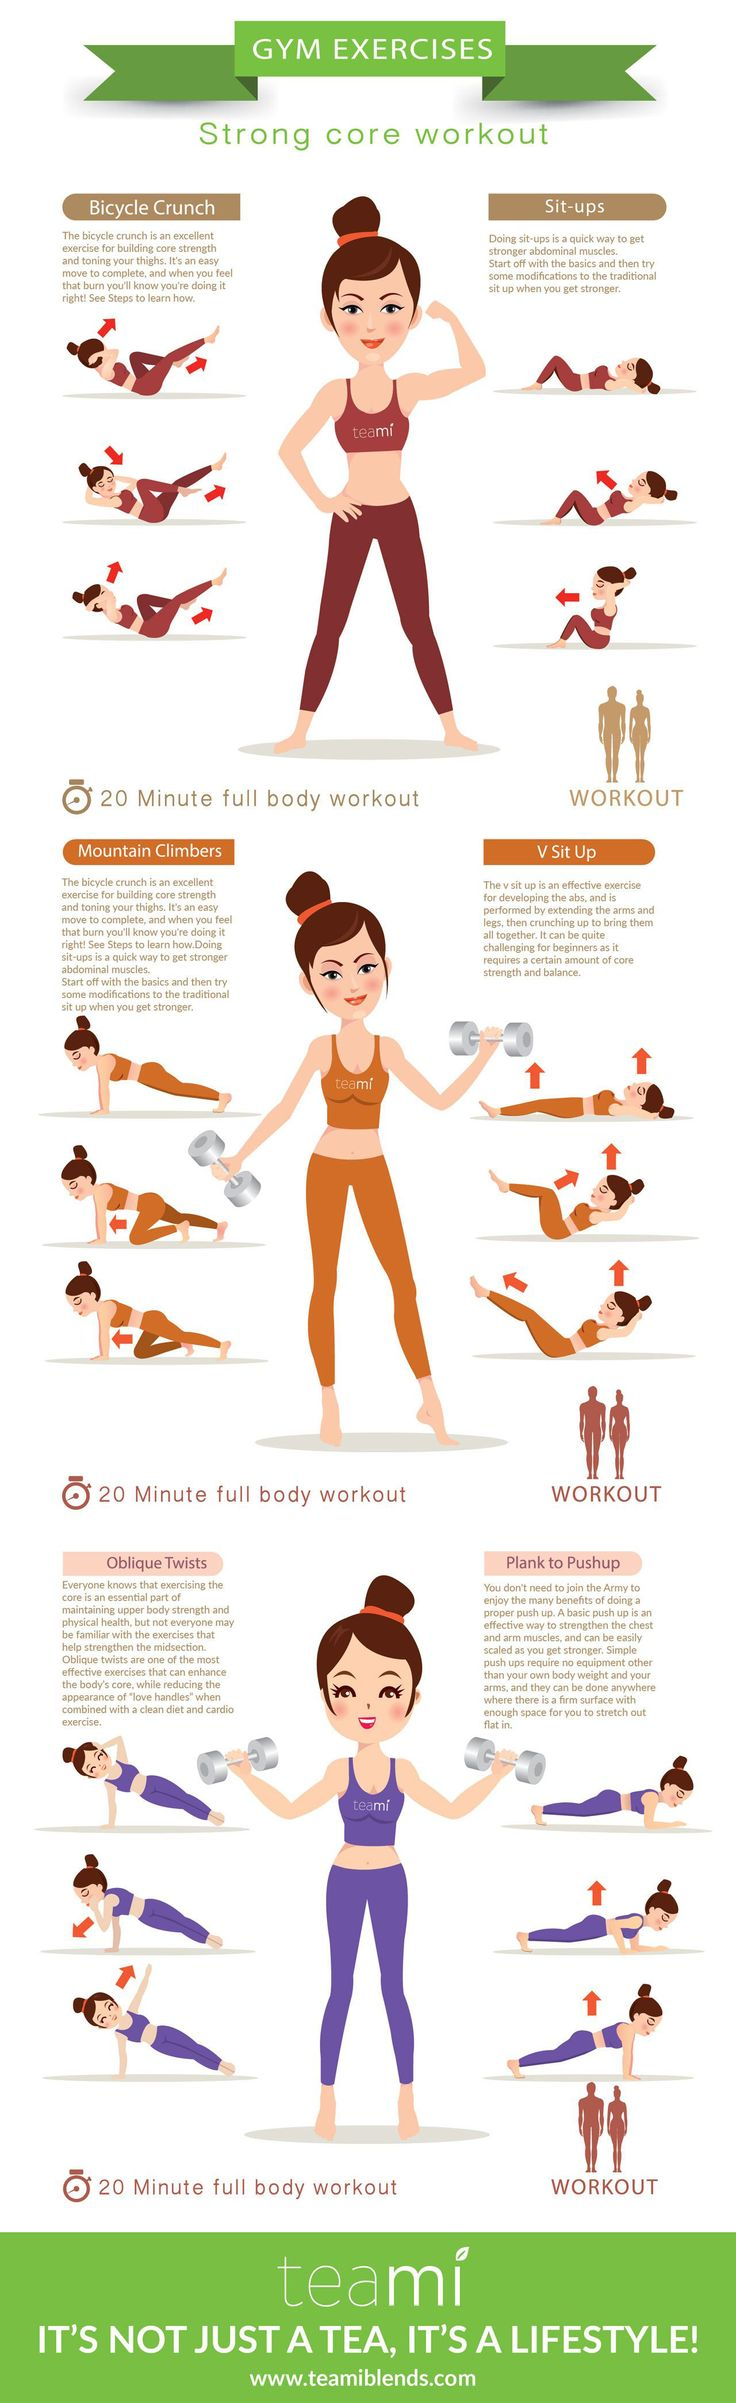 Exercising 3-5 times a week will enhance your results in a noticeable way and will get you to a whole new level!! Look good but most importantly feel good too. #teaMiblends